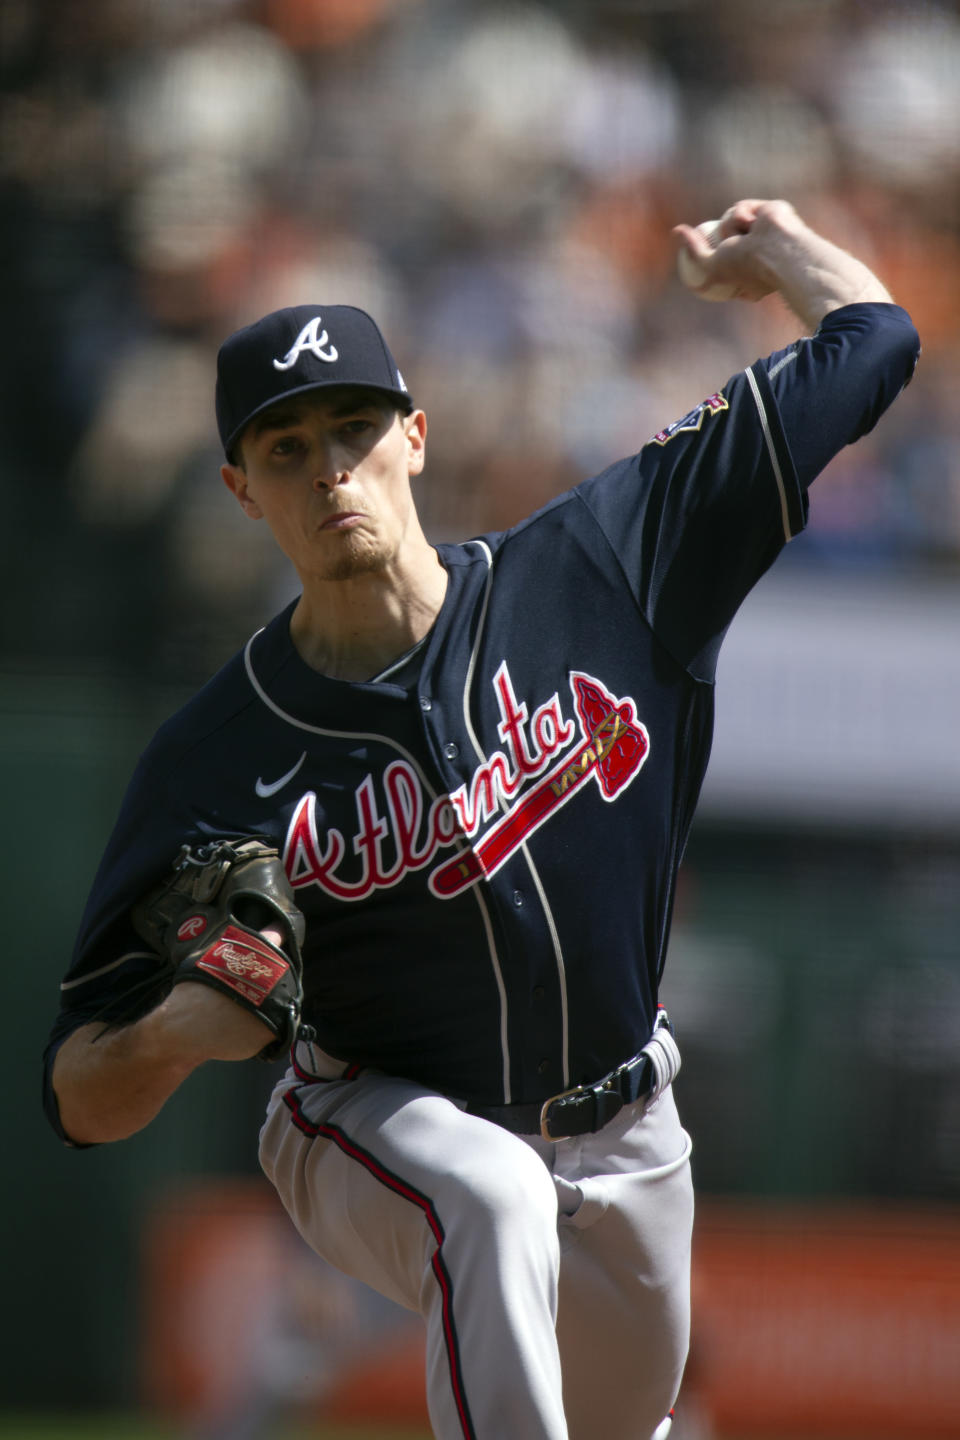 Atlanta Braves starting pitcher Max Fried delivers against the San Francisco Giants during the first inning of a baseball game, Sunday, Sept. 19, 2021, in San Francisco. (AP Photo/D. Ross Cameron)